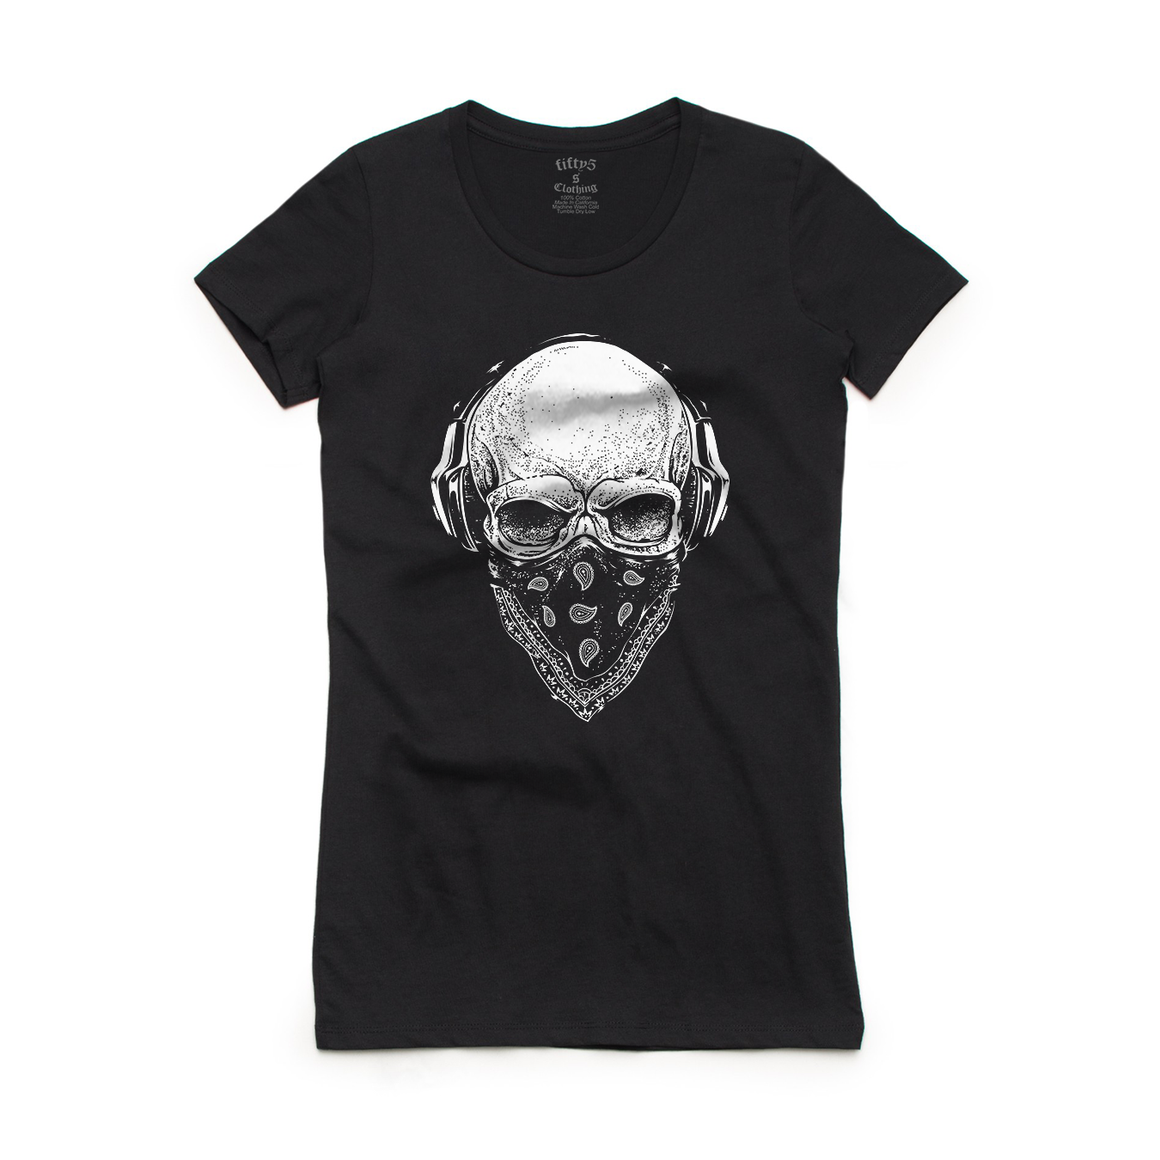 Fifty5 Clothing Skull Tunes Women's Crew Neck T-Shirt